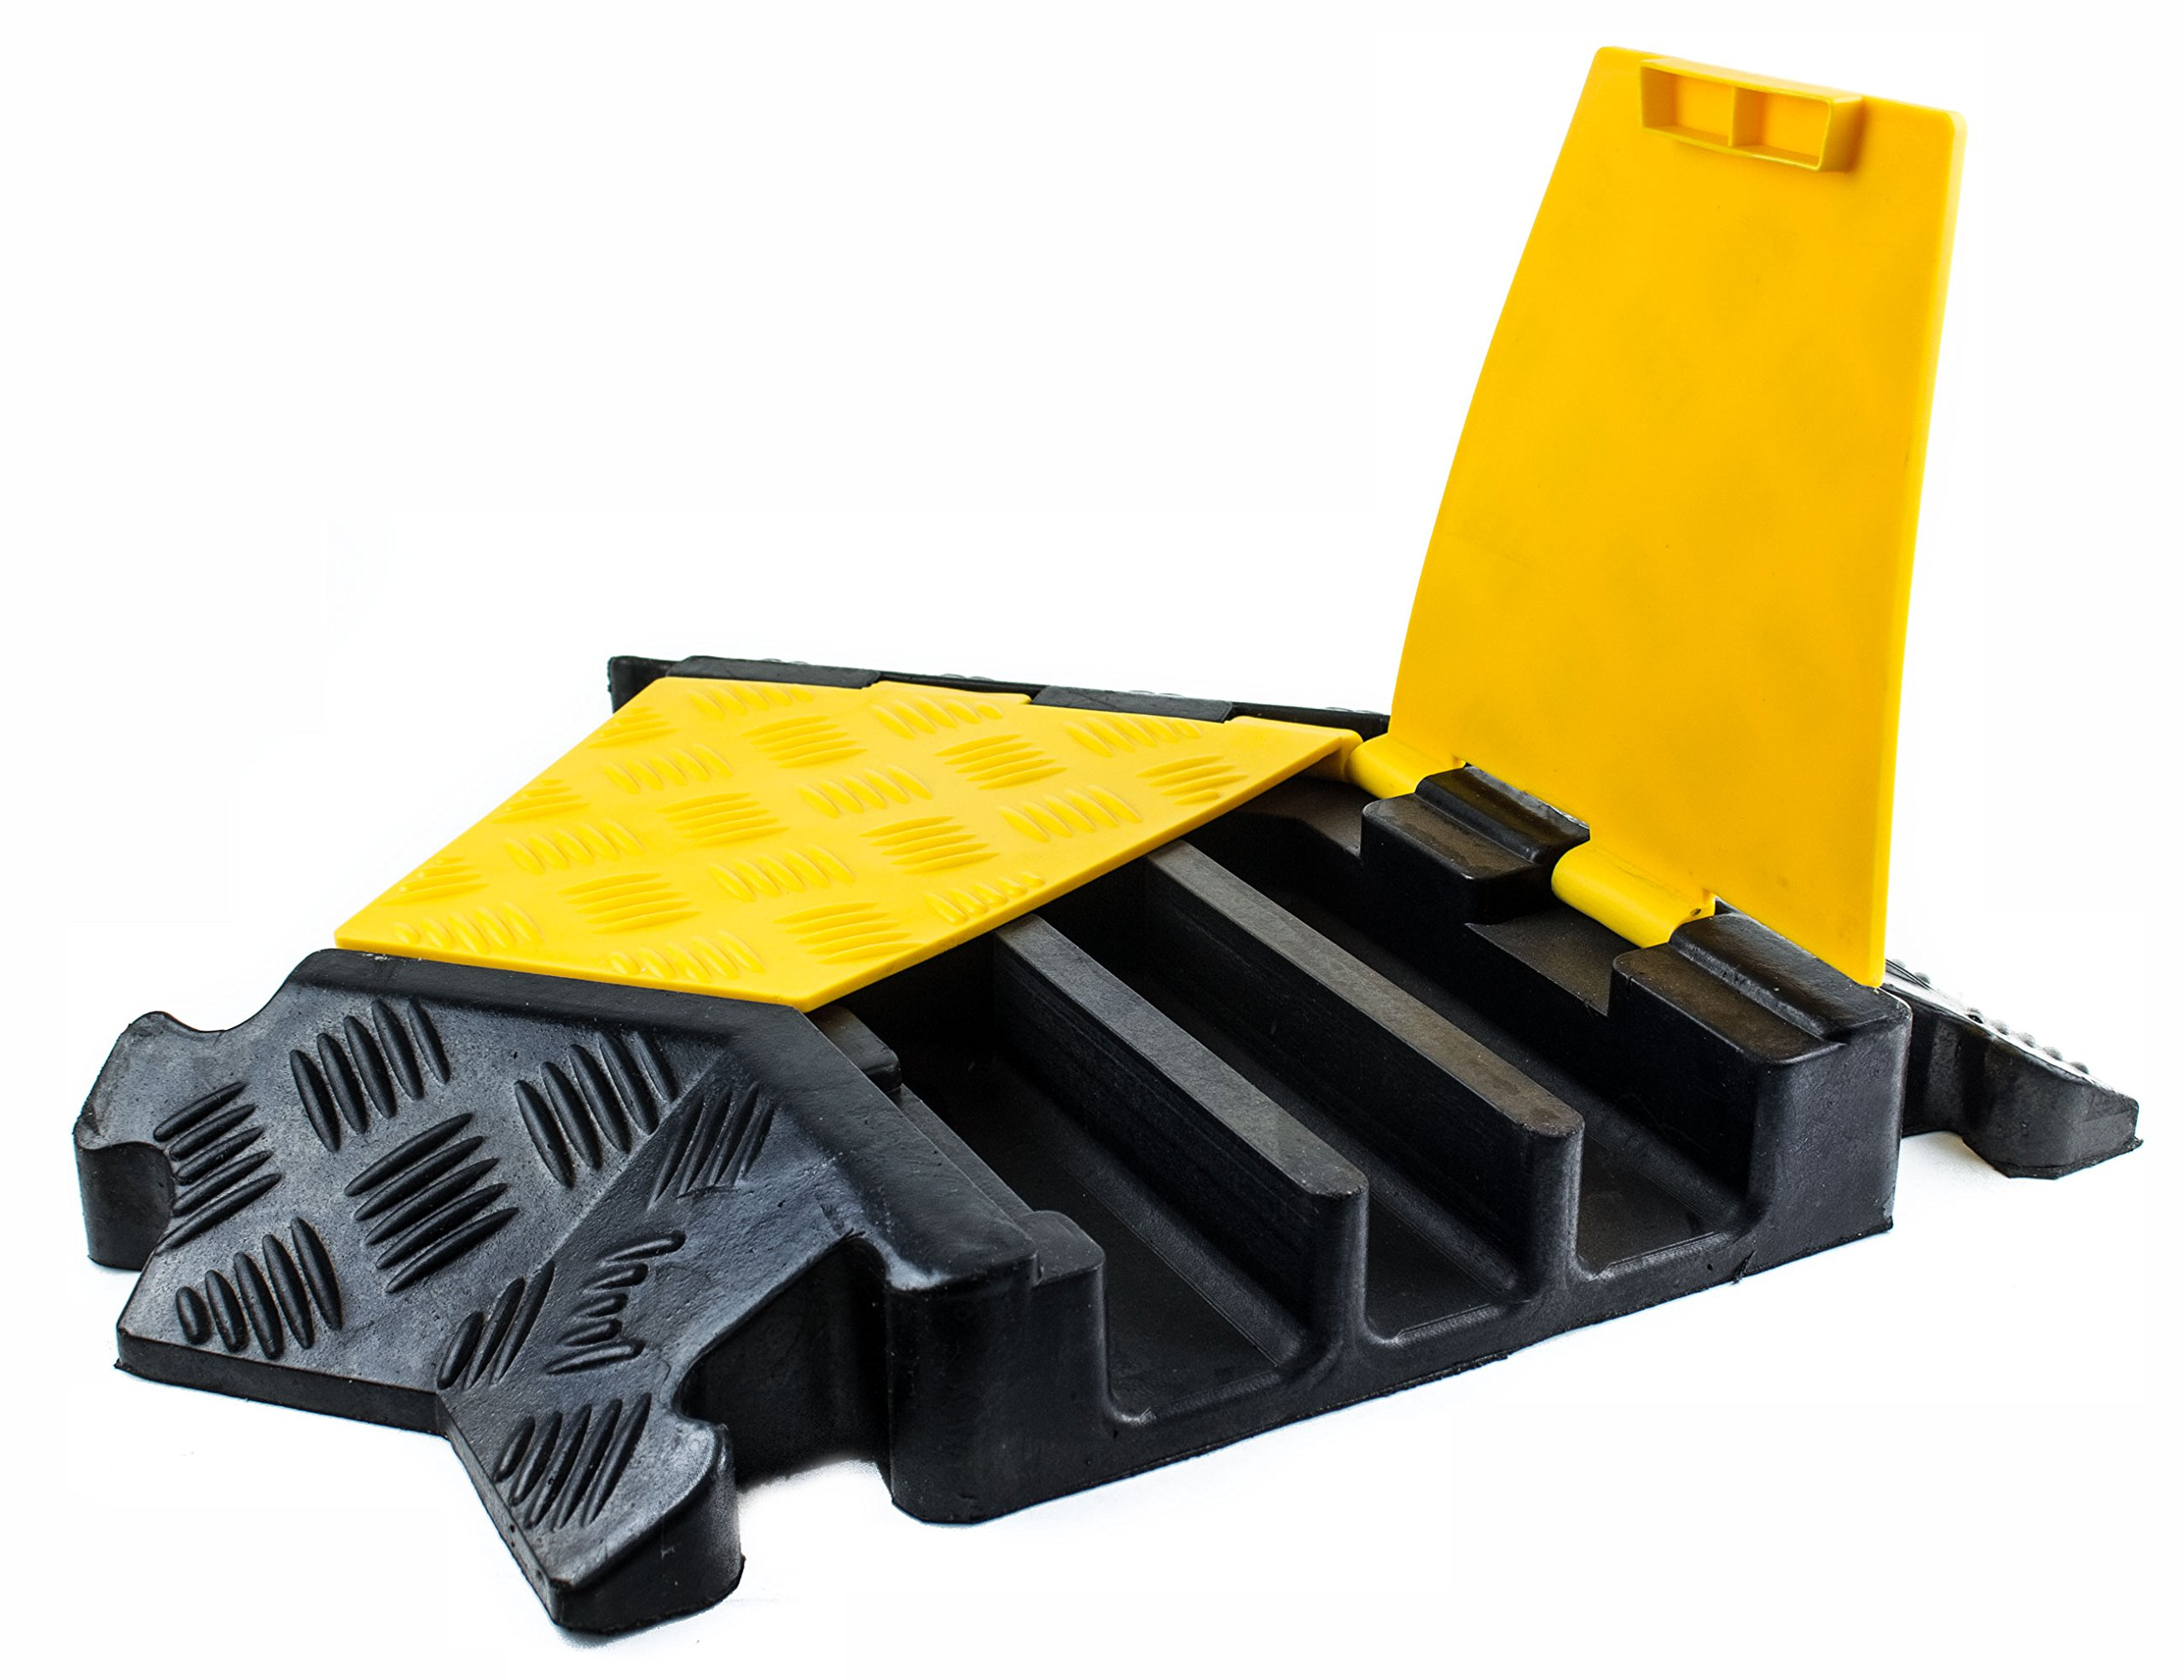 RK RK-CP-3CLT1 3 Channel Modular Rubber Cable Protector Ramp (Left Turn 45 Degree)